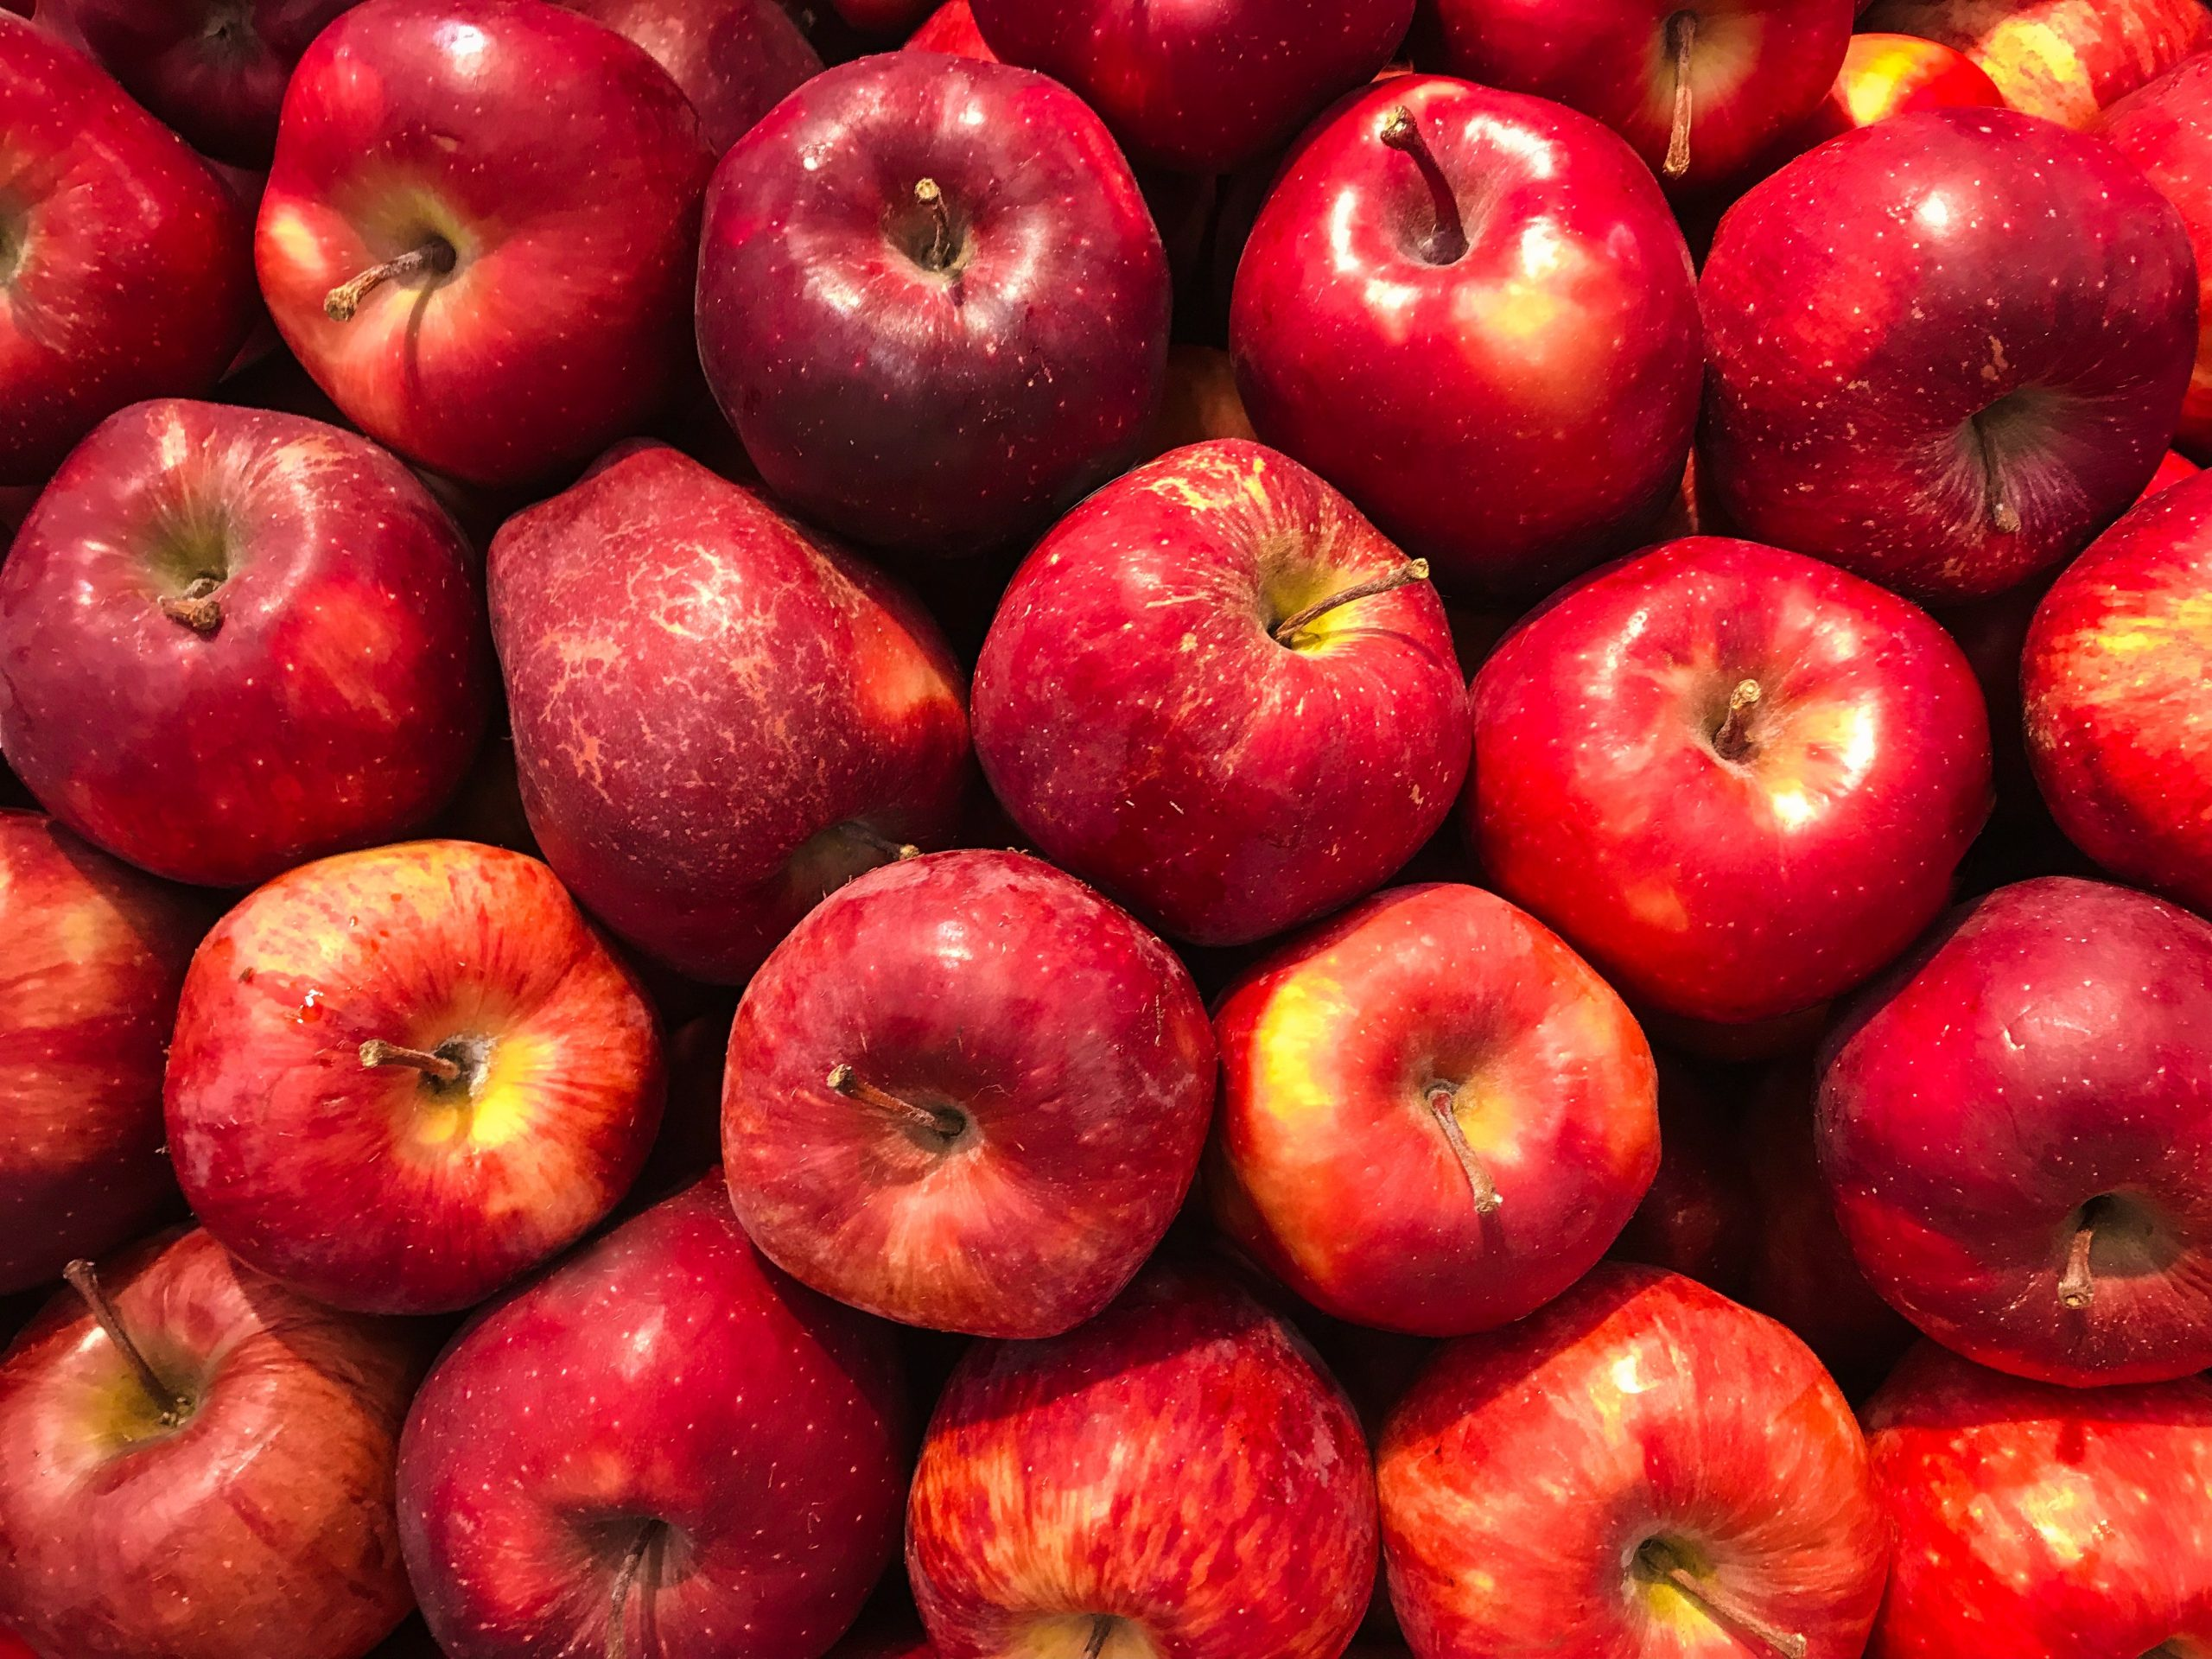 Juicy bright red apples